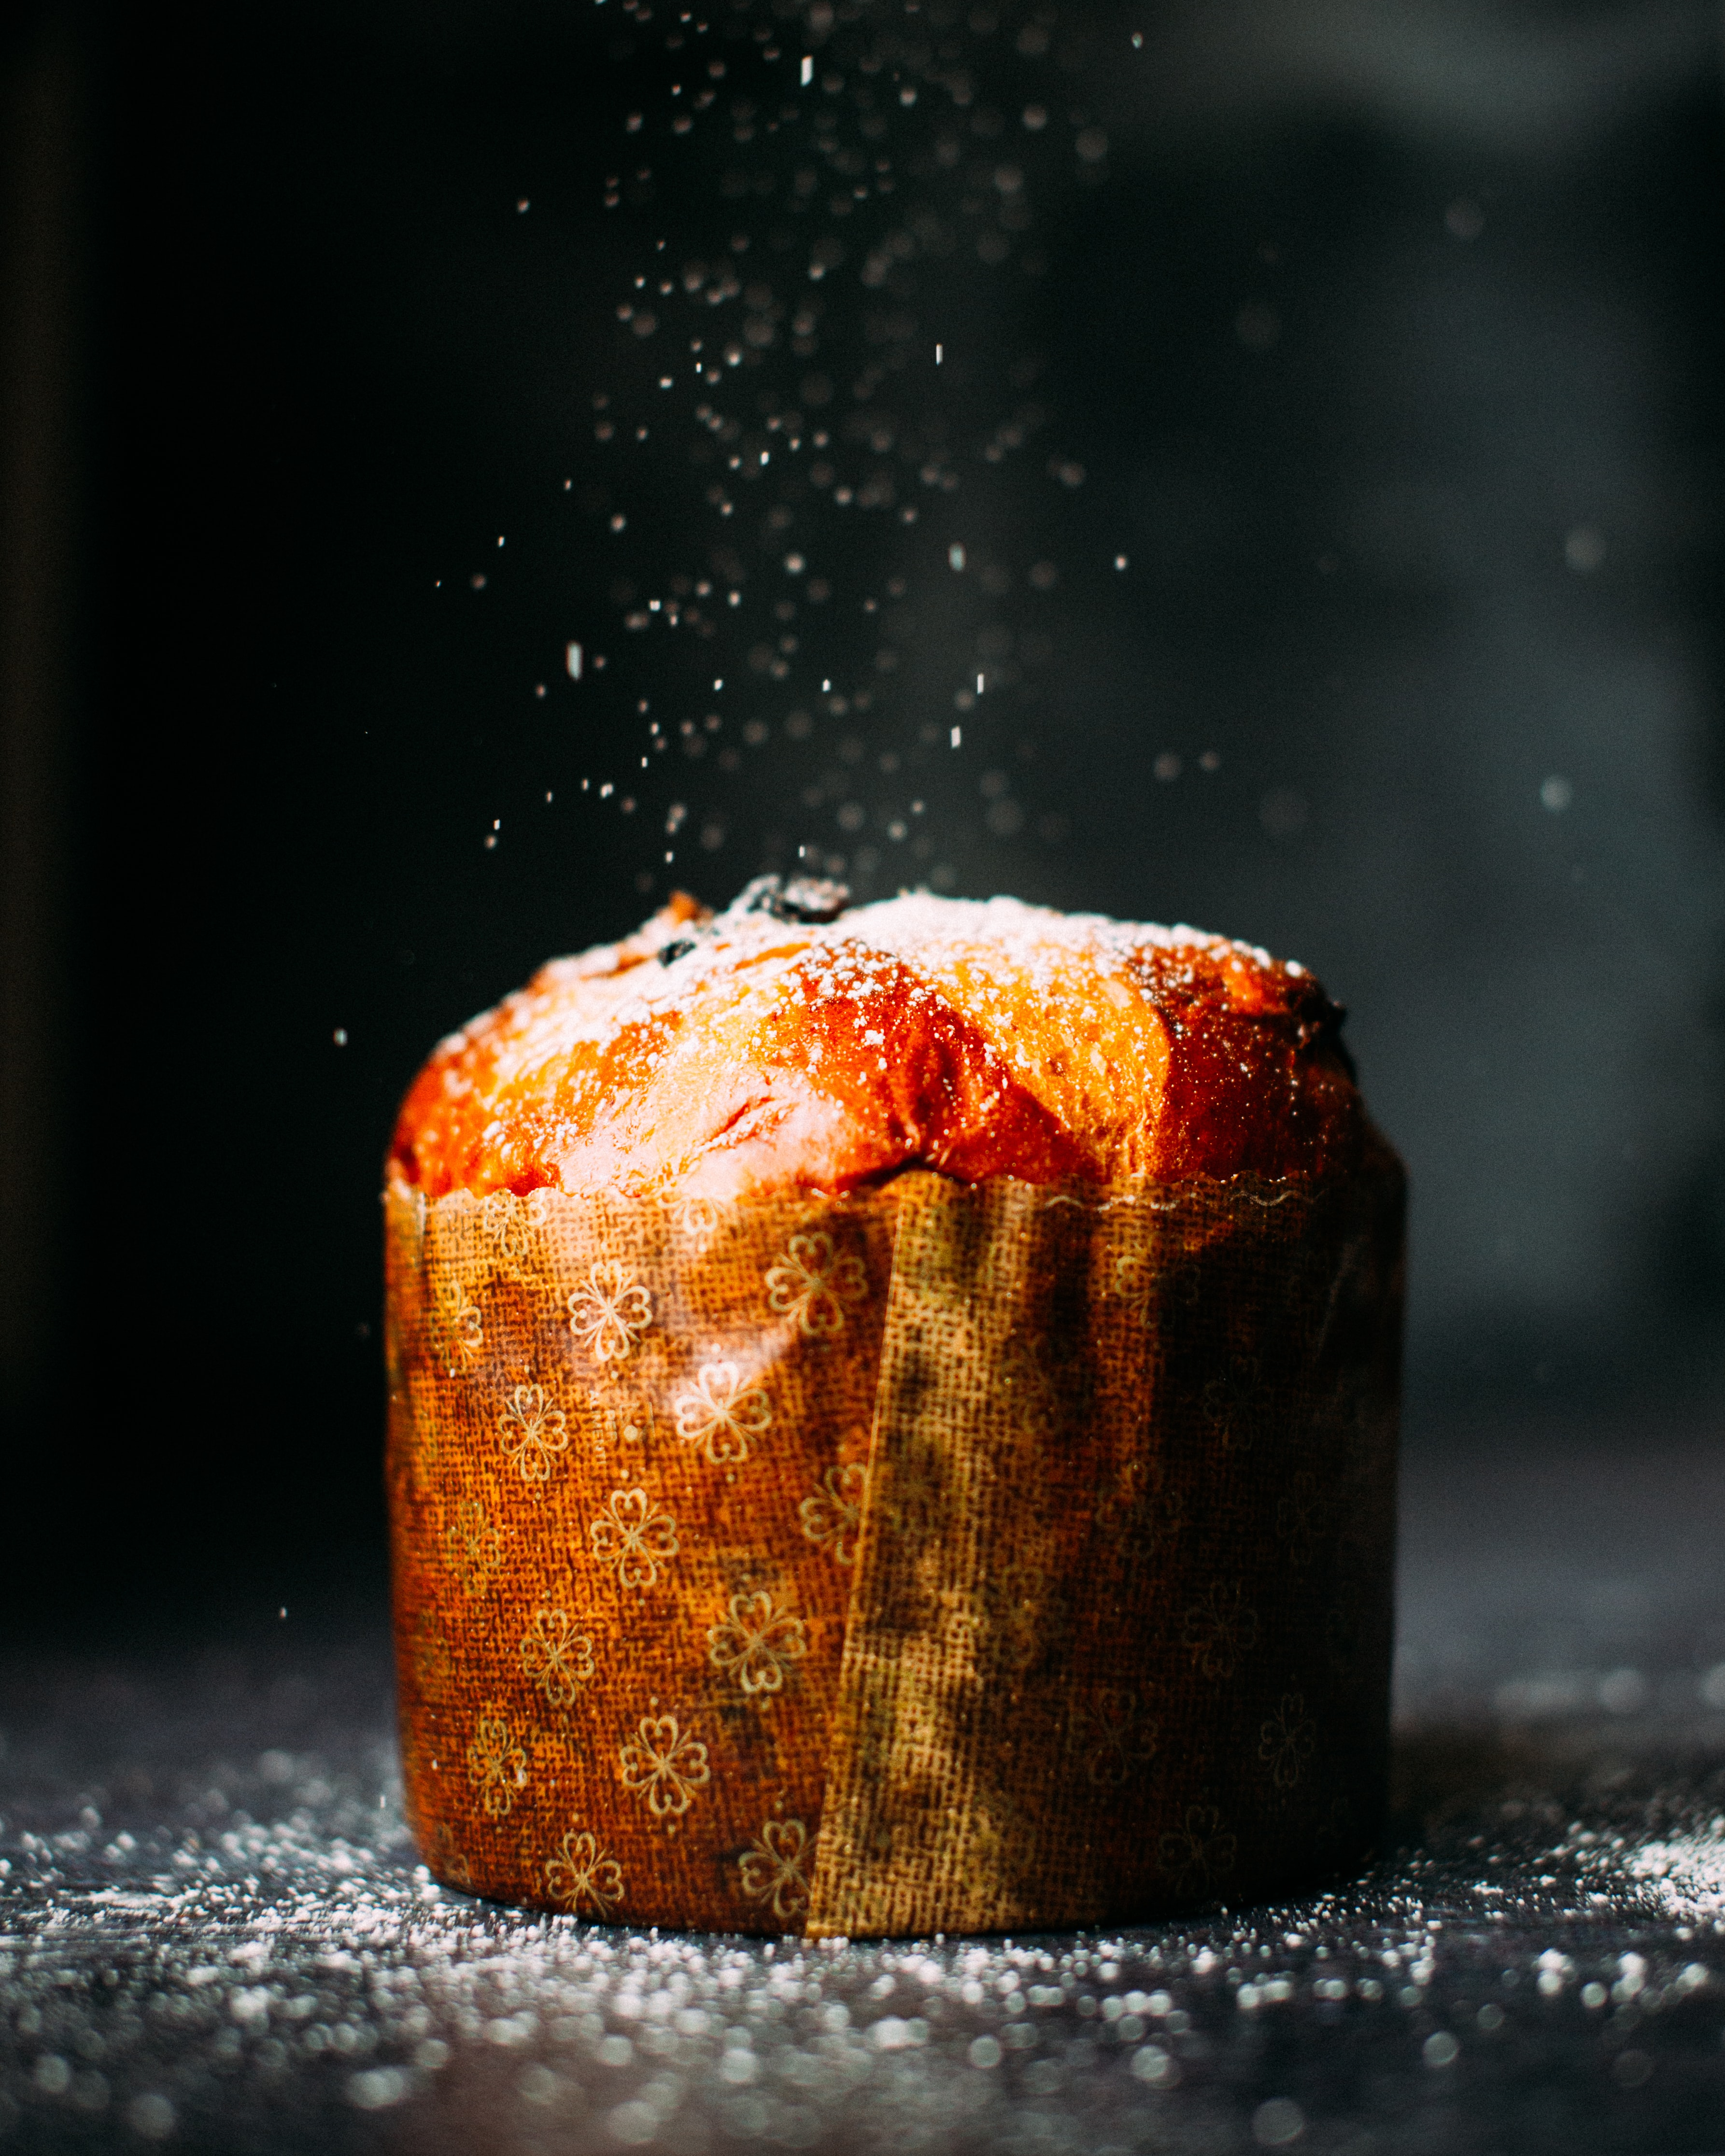 panettone, fluffy sweet bread Italy